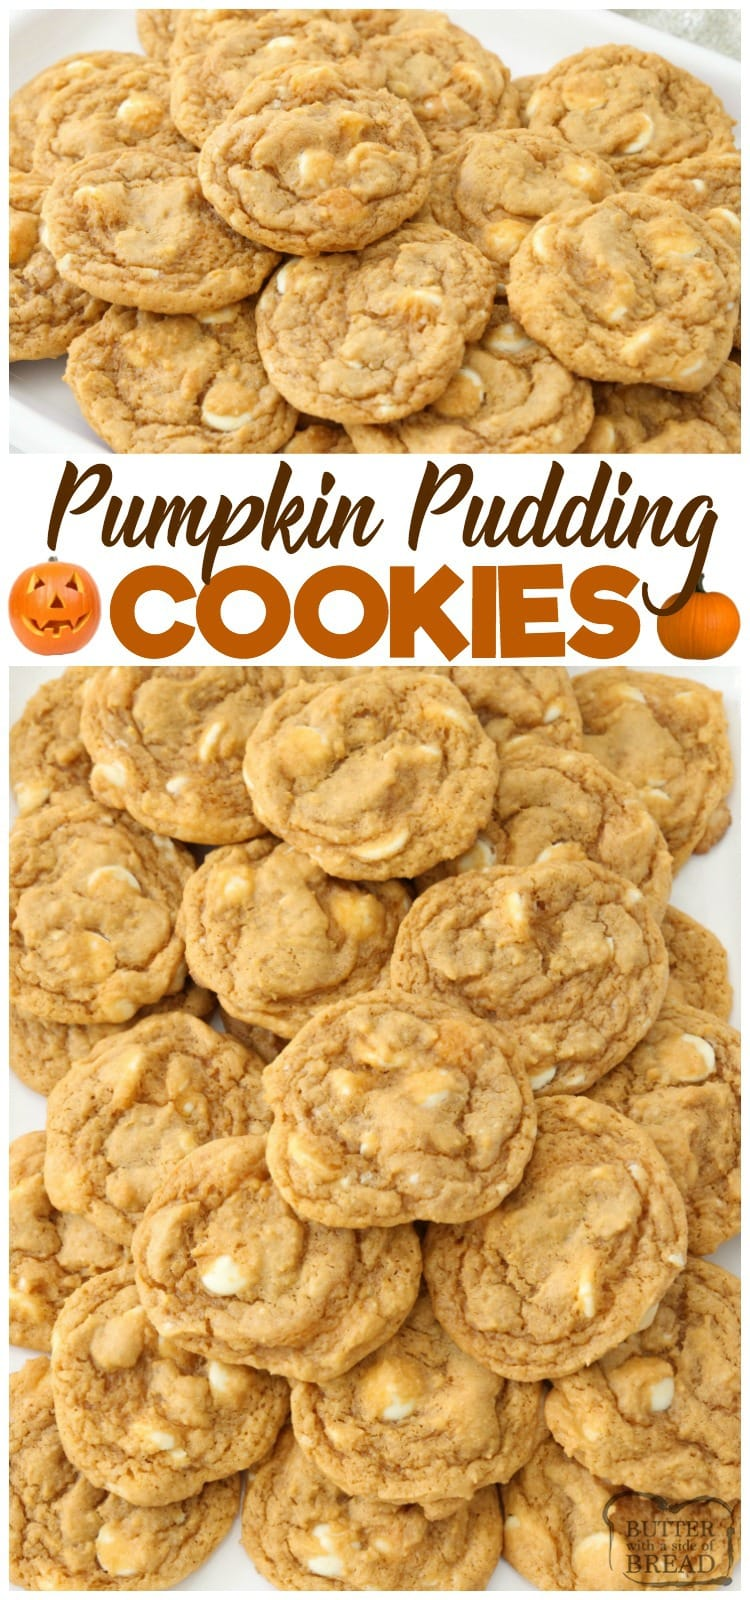 Pumpkin Pudding Cookies are soft, sweet & pumpkin spiced with pudding mix for the best flavor & texture. Easiest #pumpkin #cookies ever from Butter With A Side of Bread